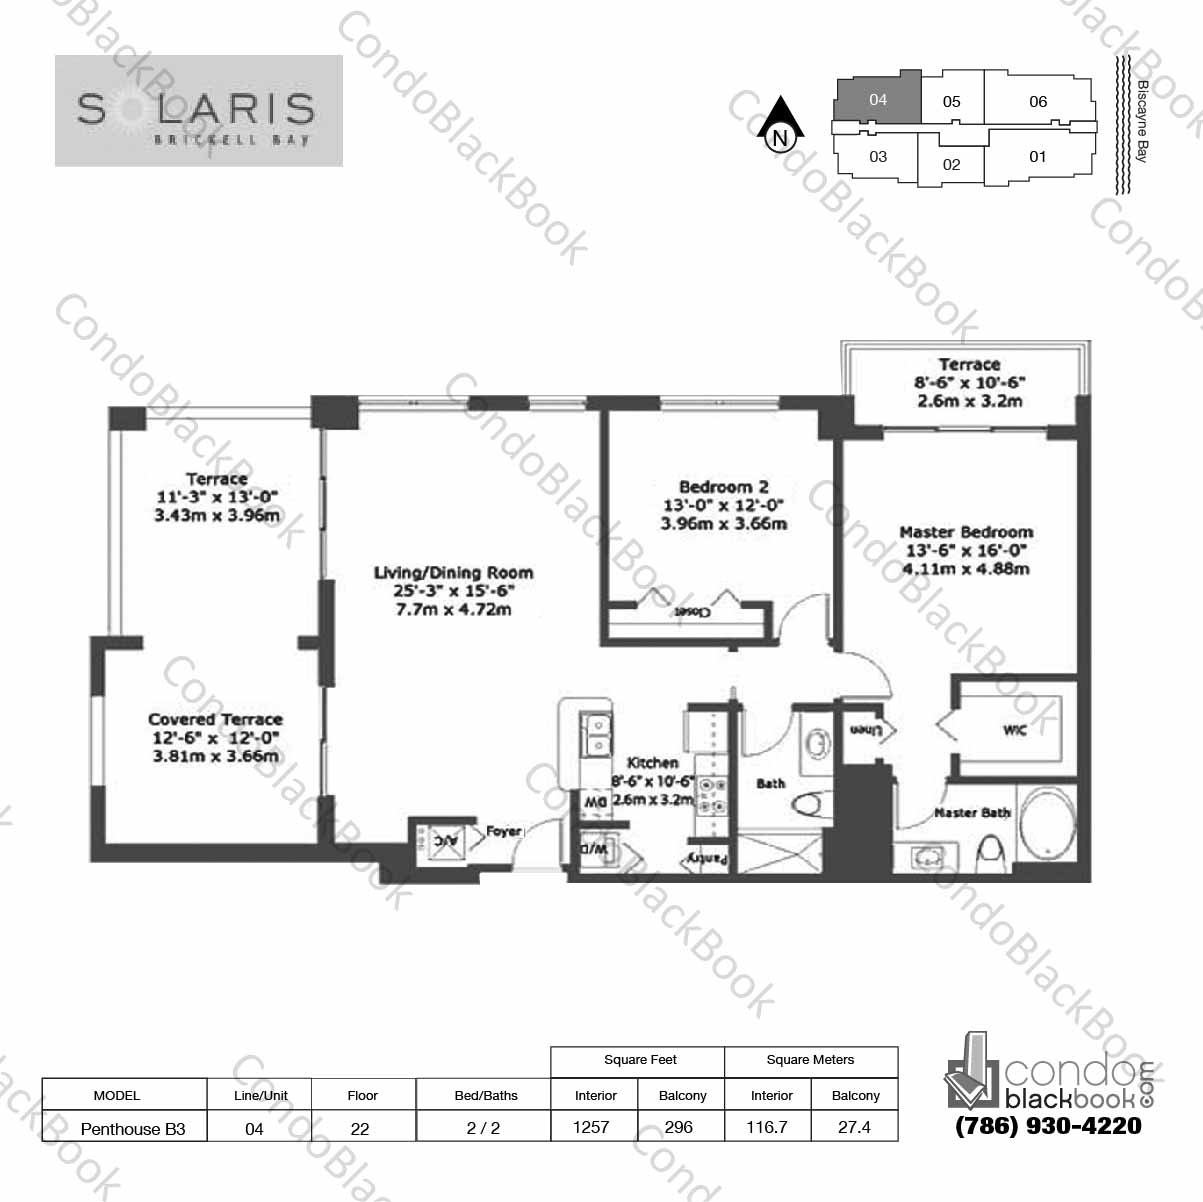 Floor plan for Solaris at Brickell Brickell Miami, model Penthouse B3, line 04,  2 / 2 bedrooms, 1257 sq ft